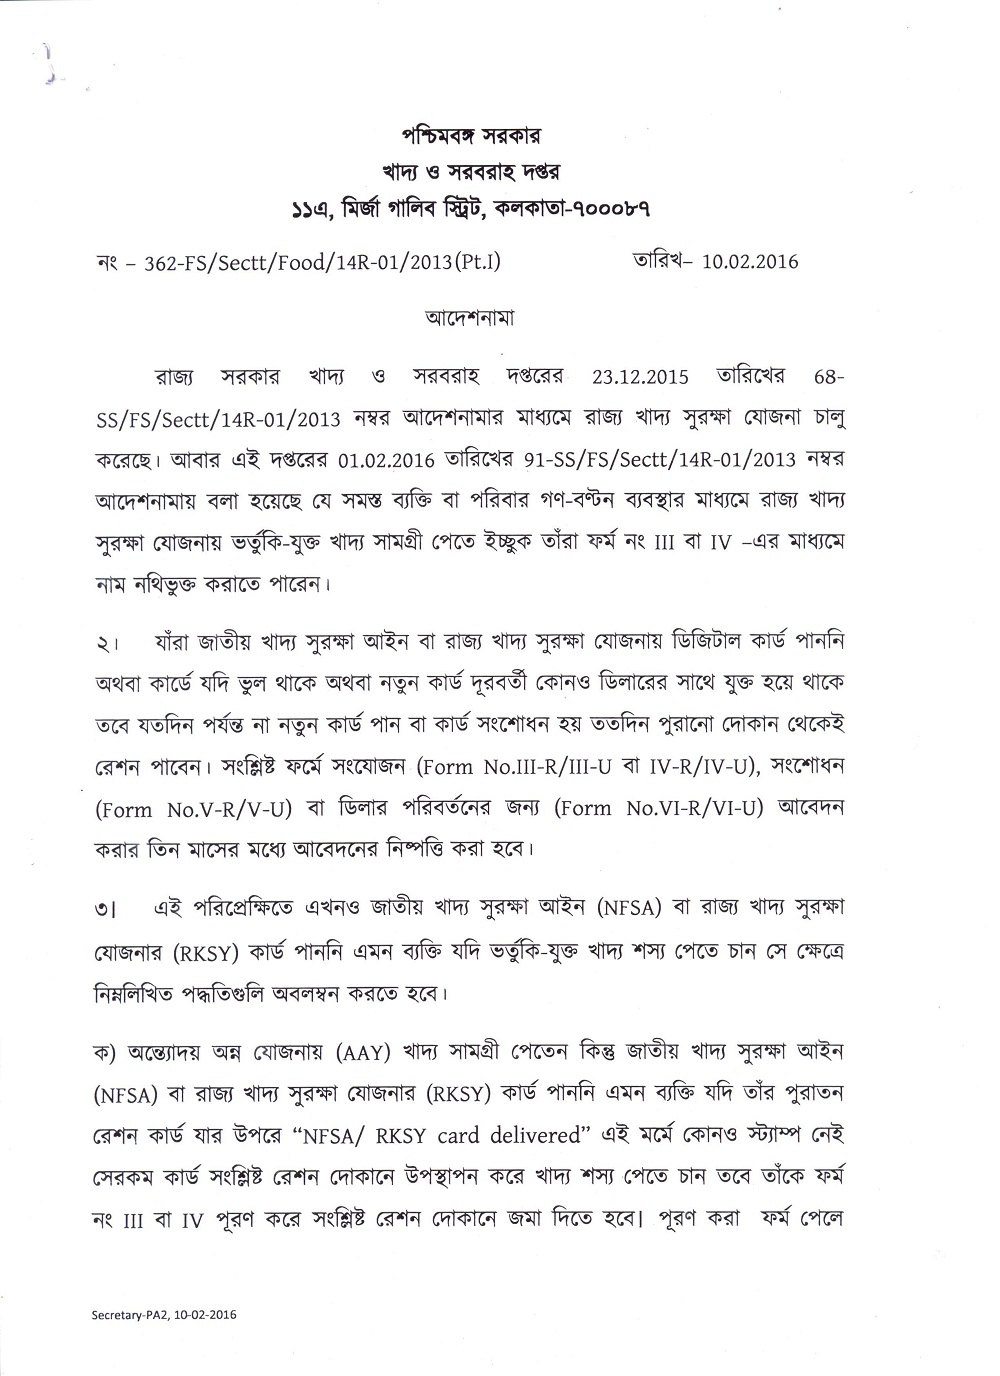 Distribution of Foodgrain on Submission of Old Ration Card